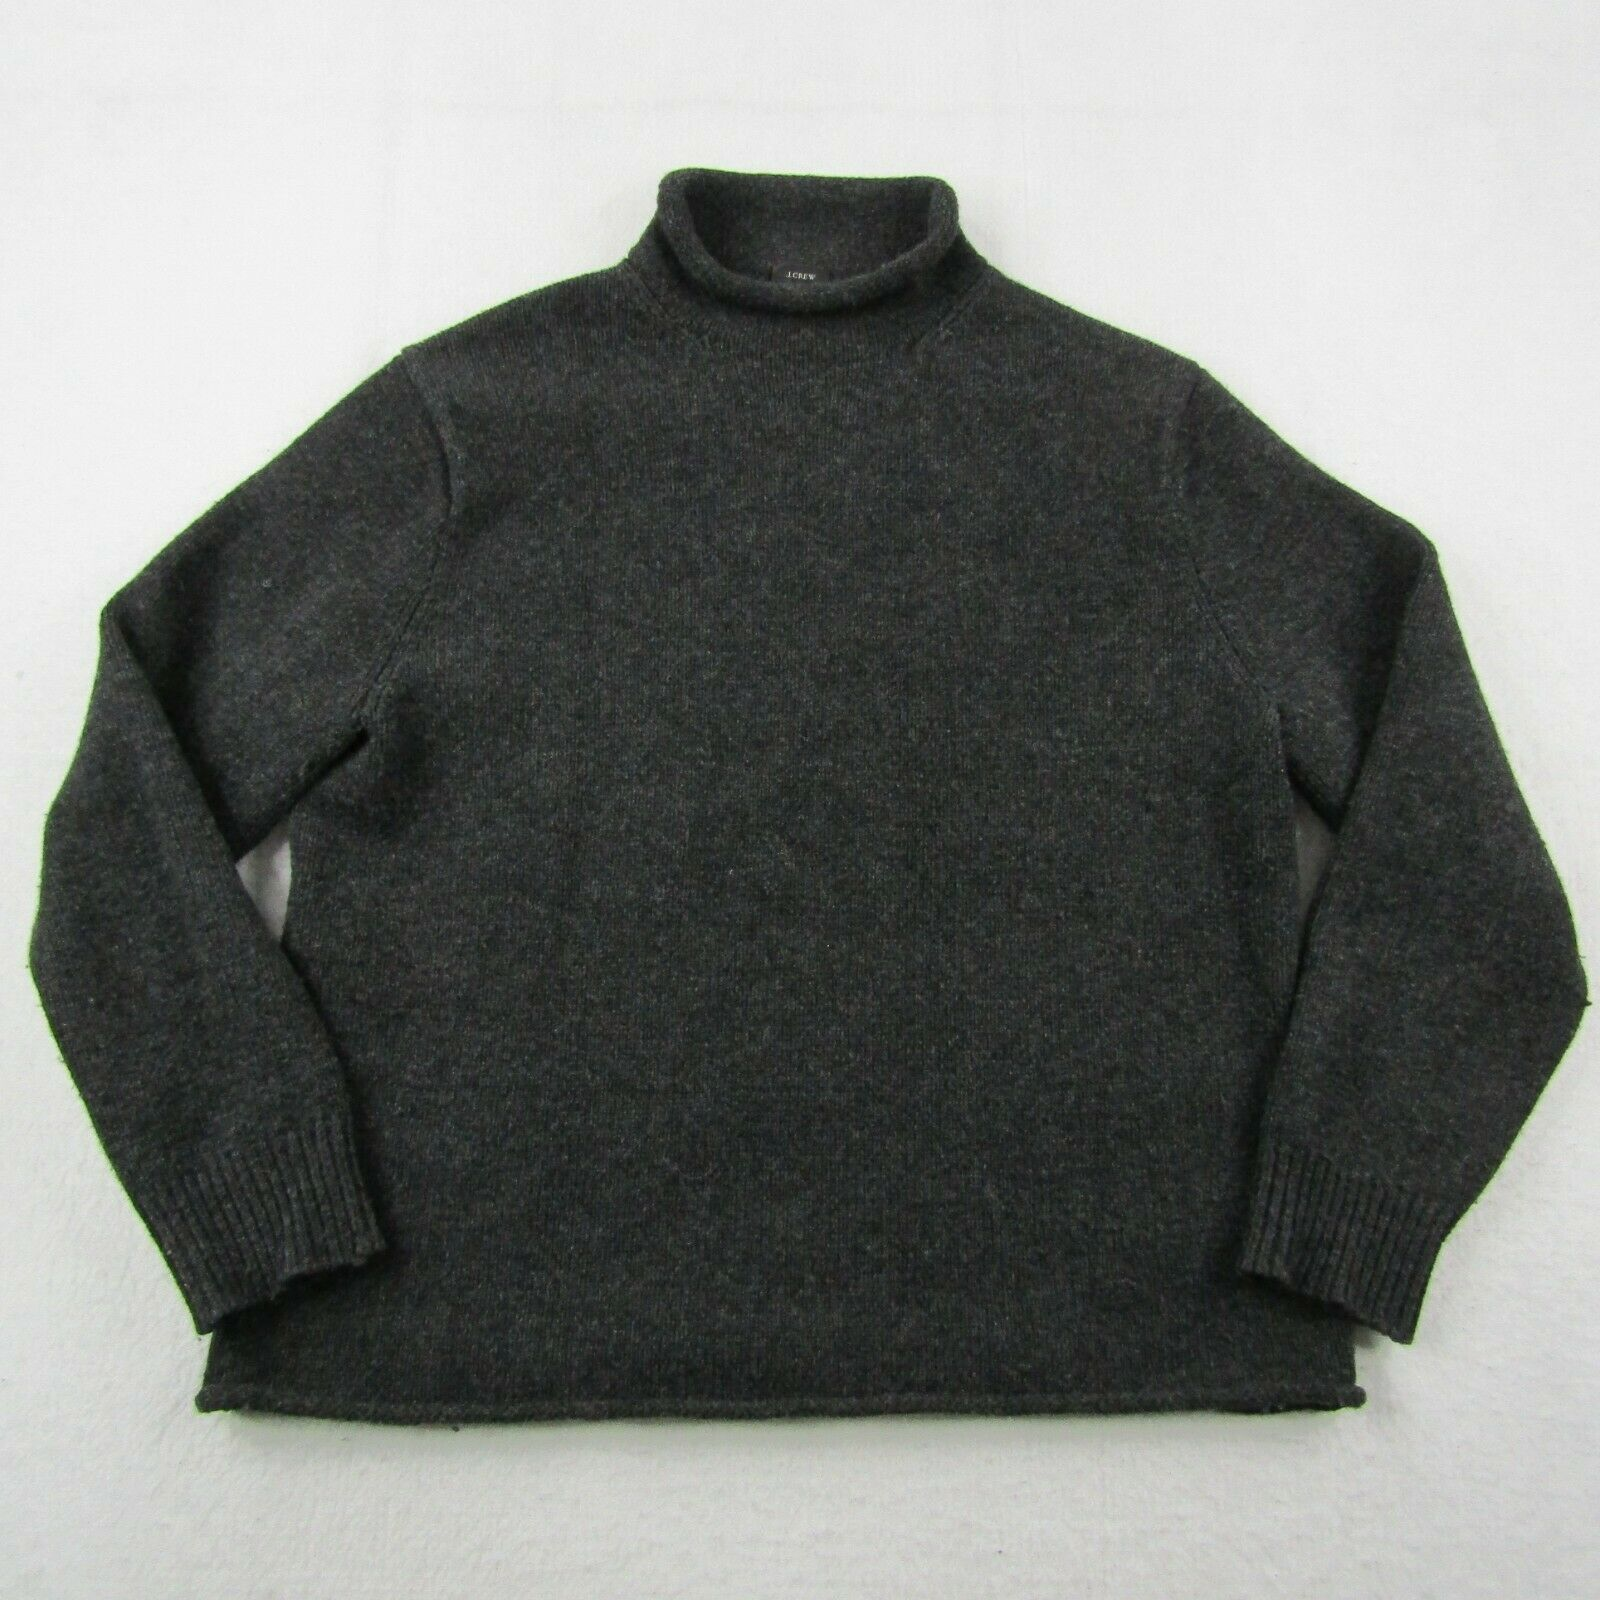 Product Image 1 - J Crew Roll Neck Sweater